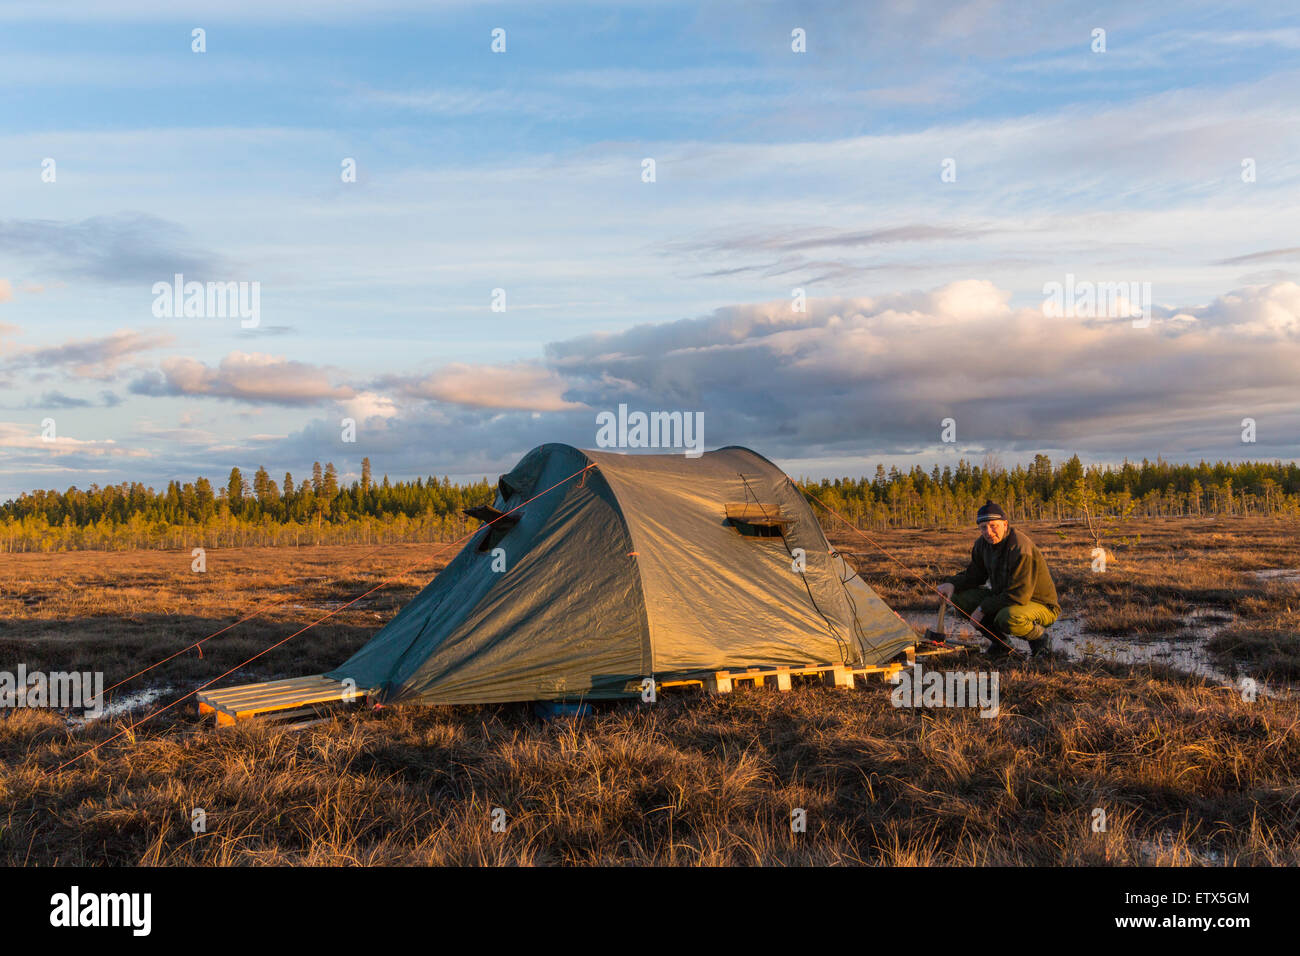 Man, 60-65 years old, putting up his hide and preparing for photography, in Norrbotten, Sweden - Stock Image